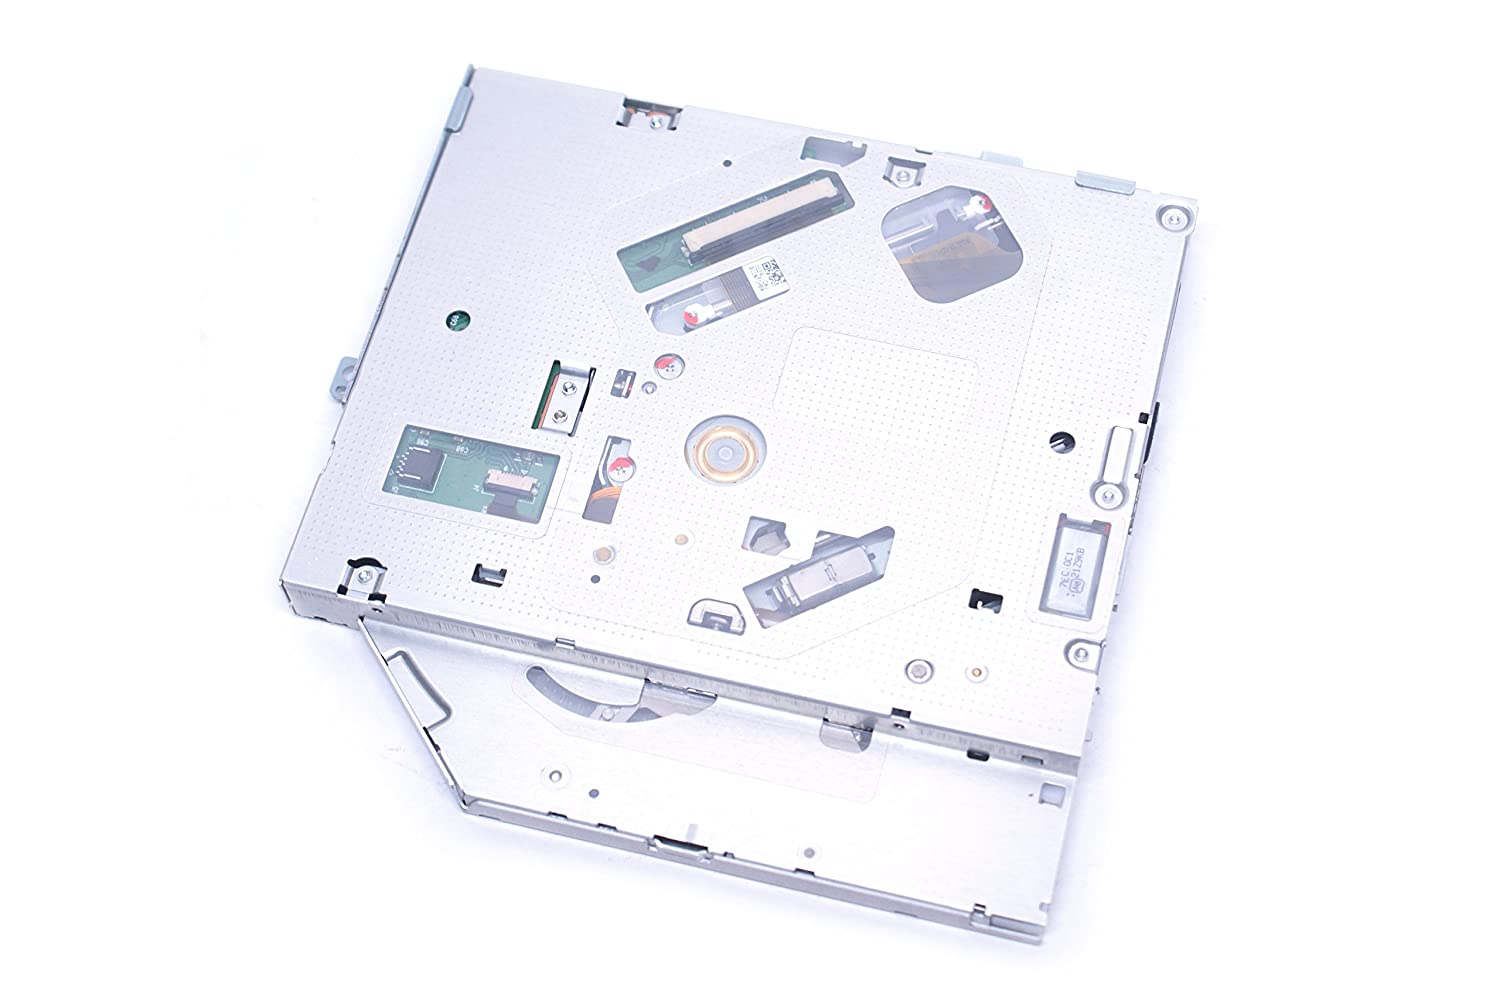 Genuine Dell Studio 1536 1537 1558 1735 1737 Laptop Schematic Of Current Power Supply For Double Laser From Dvdrw Burner Notebook Sata Slot Load Dvd Rw Cd Rewritable Dl Optical Drive